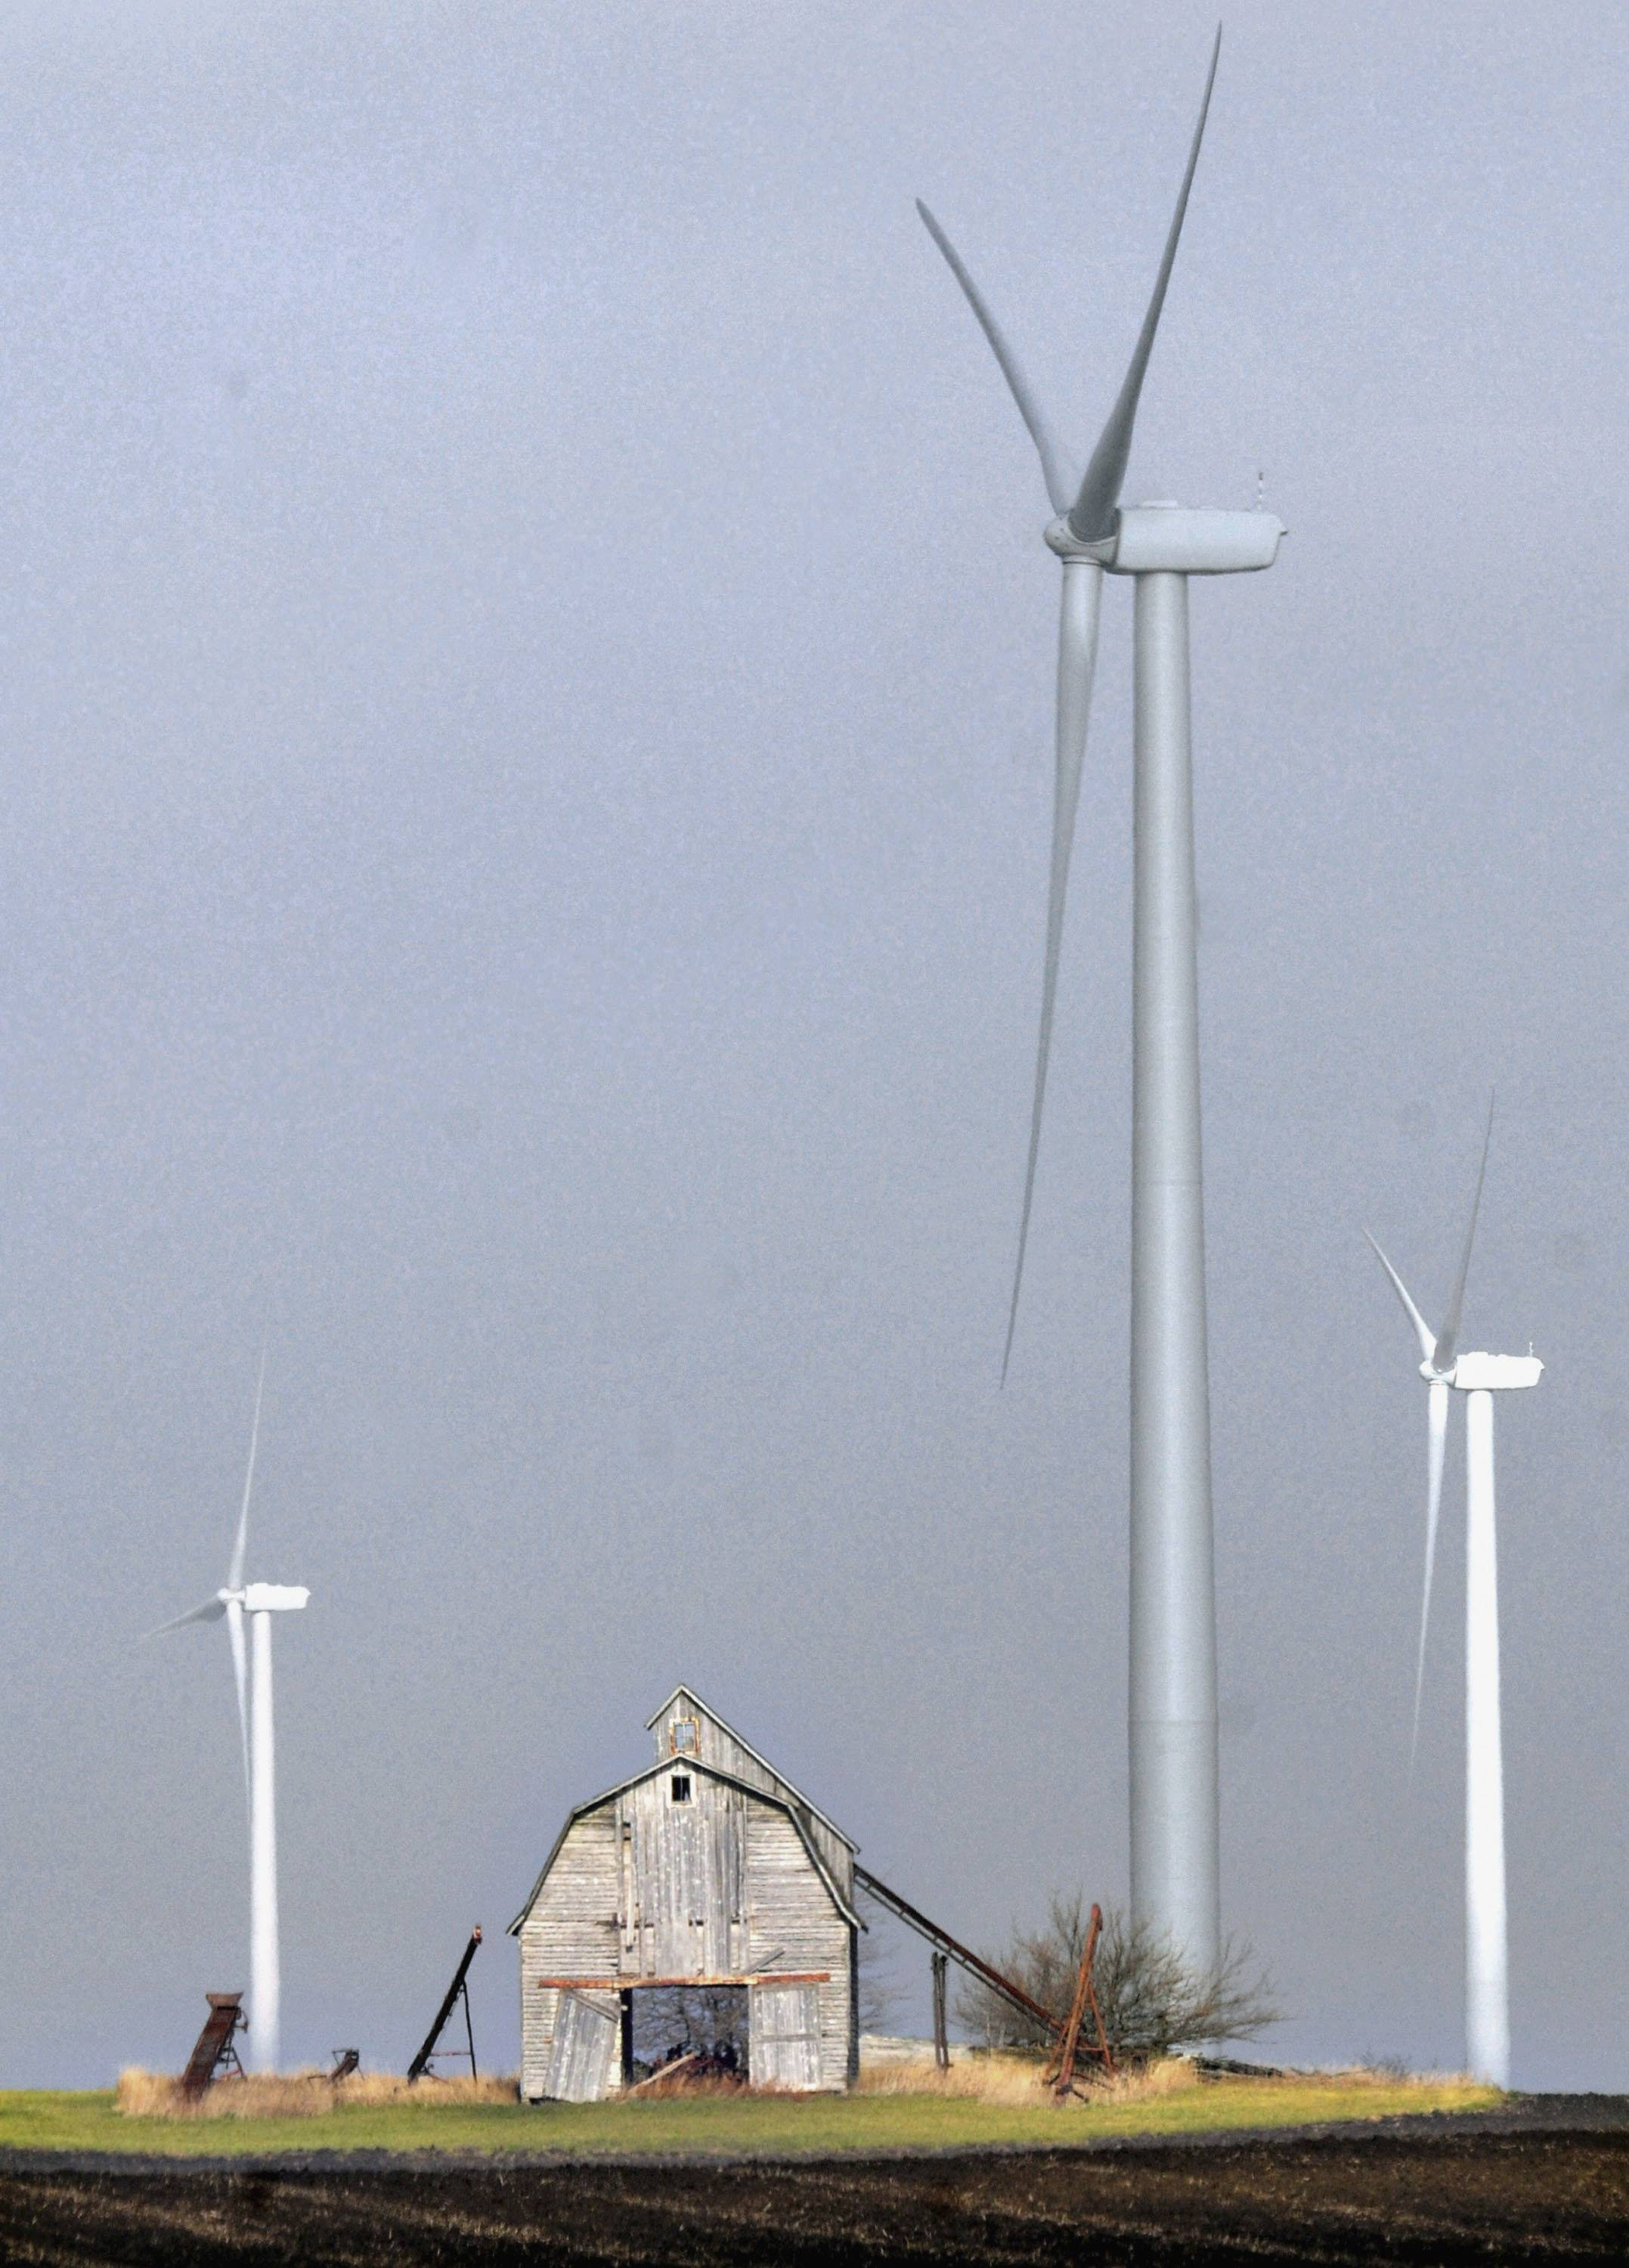 Several wind turbines produce electricity east of Paxton, Ill.